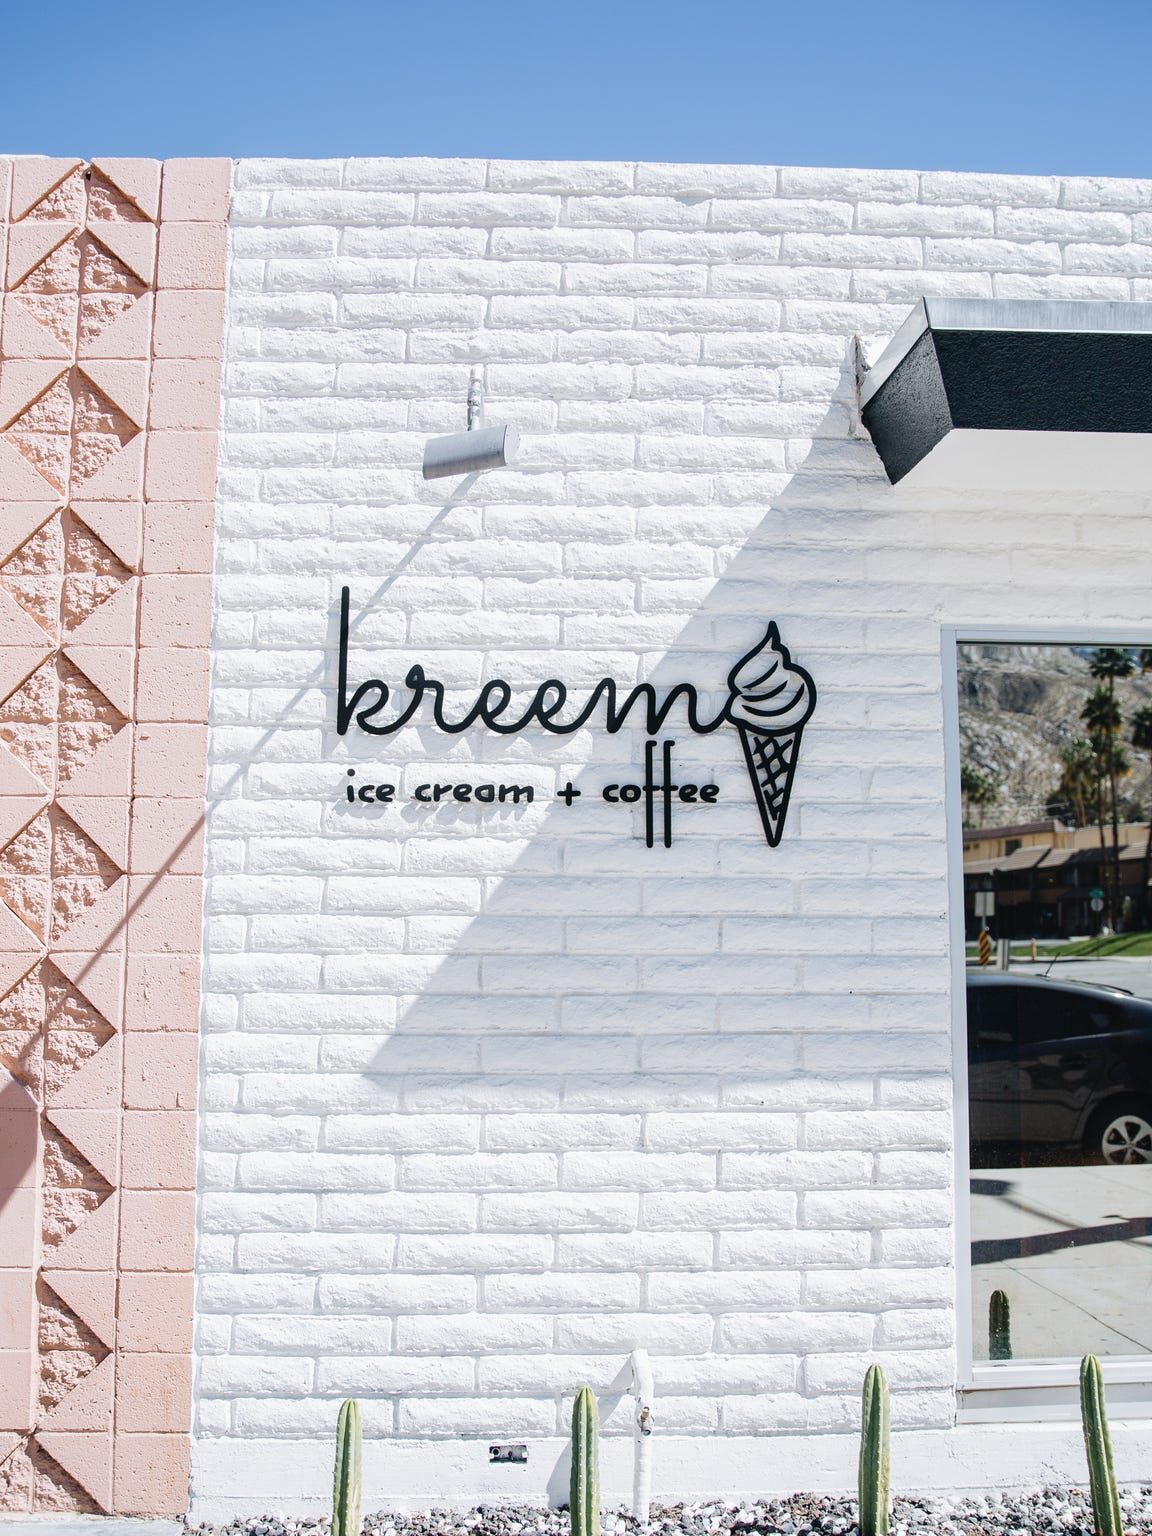 Kreem opens in Palm Springs Friday, and will offer gourmet coffee and ice cream.